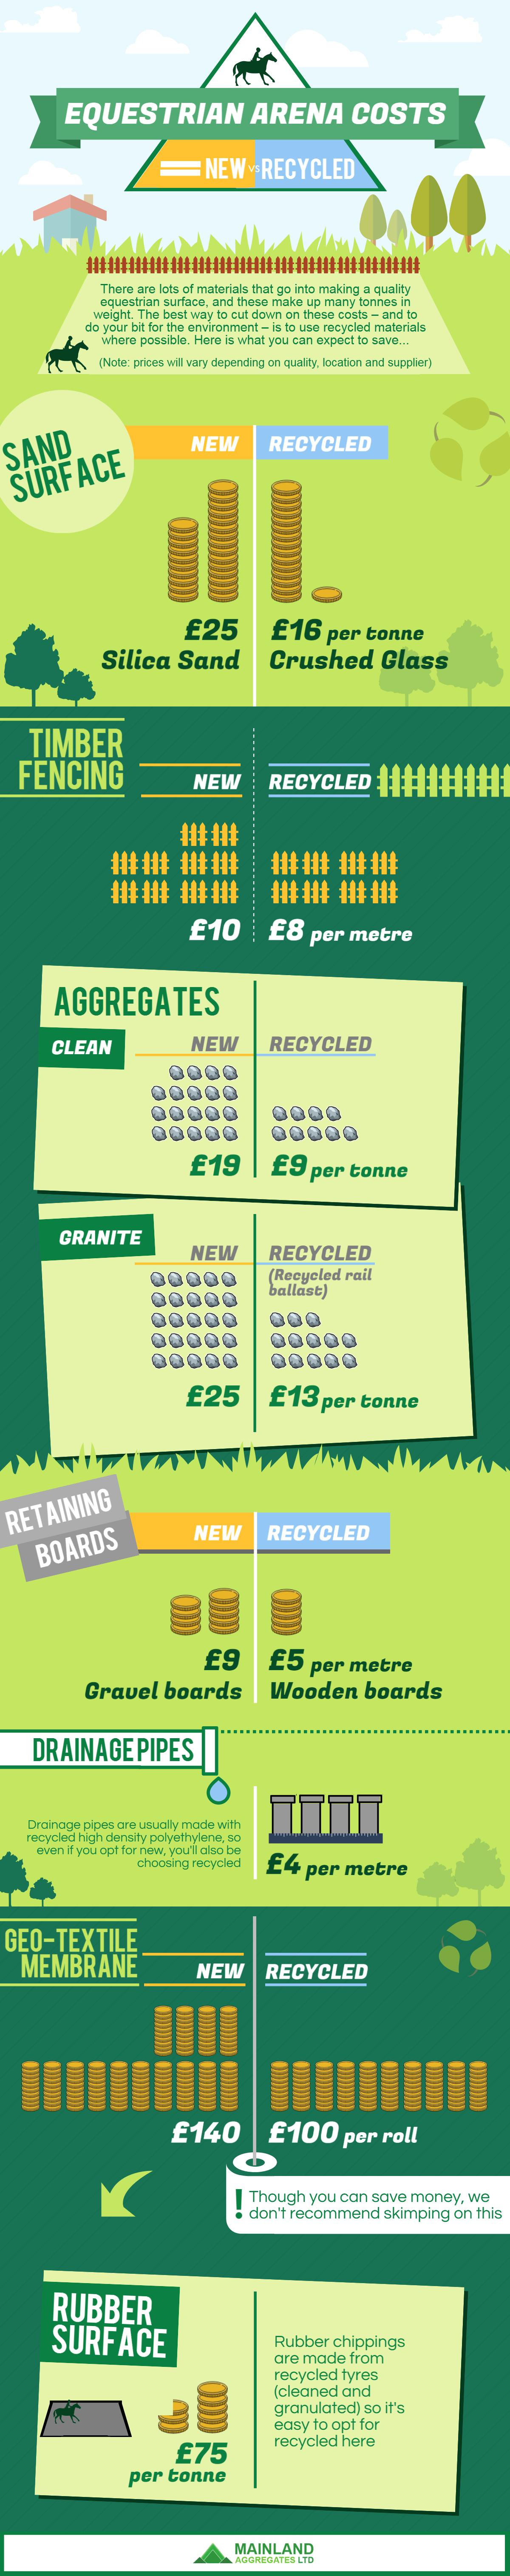 Use Recycled Materials To Save Money For Your New Arena